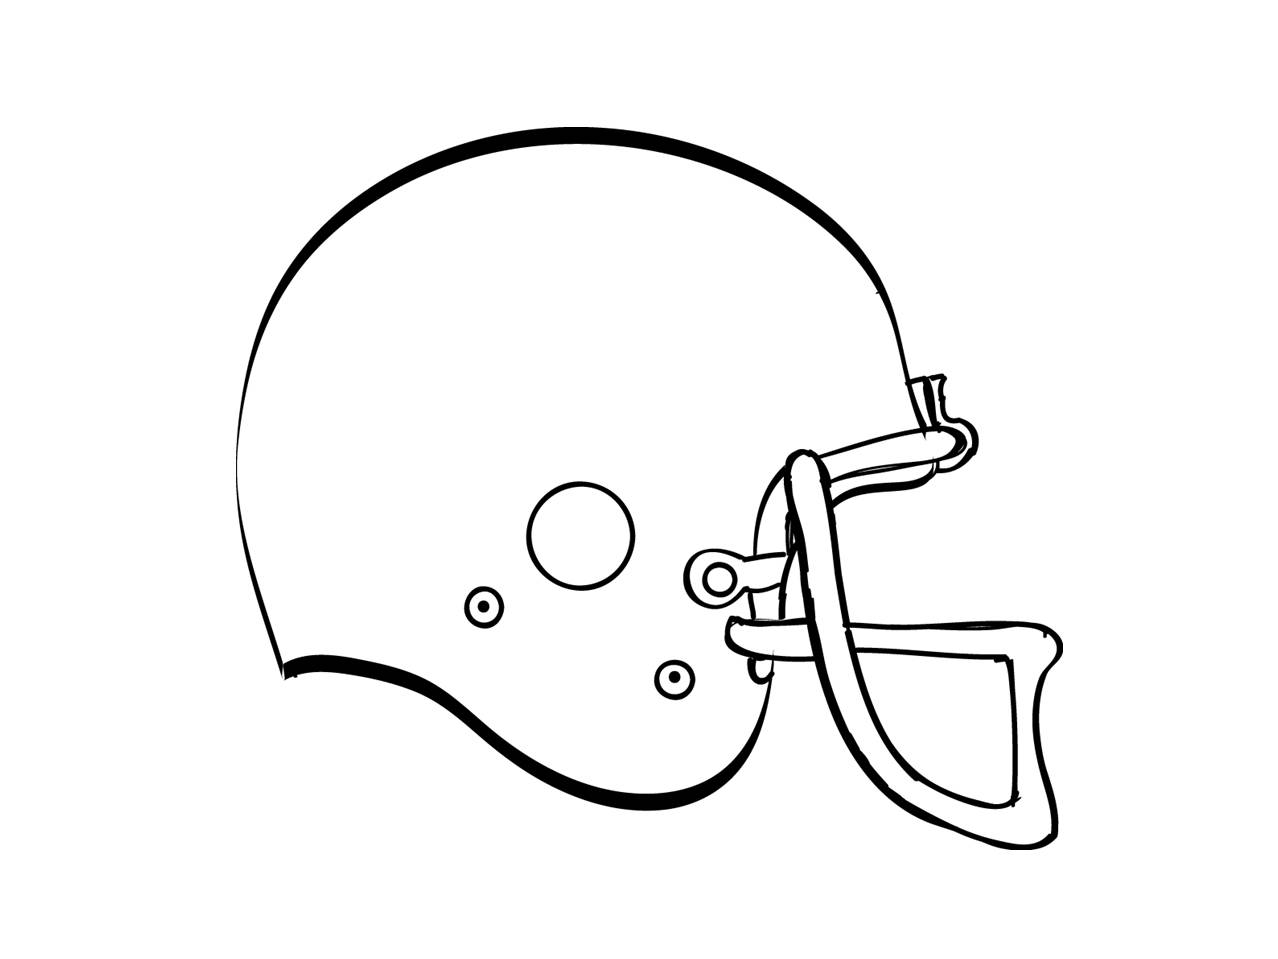 1278x959 Free Black And White Football Helmets Clipart